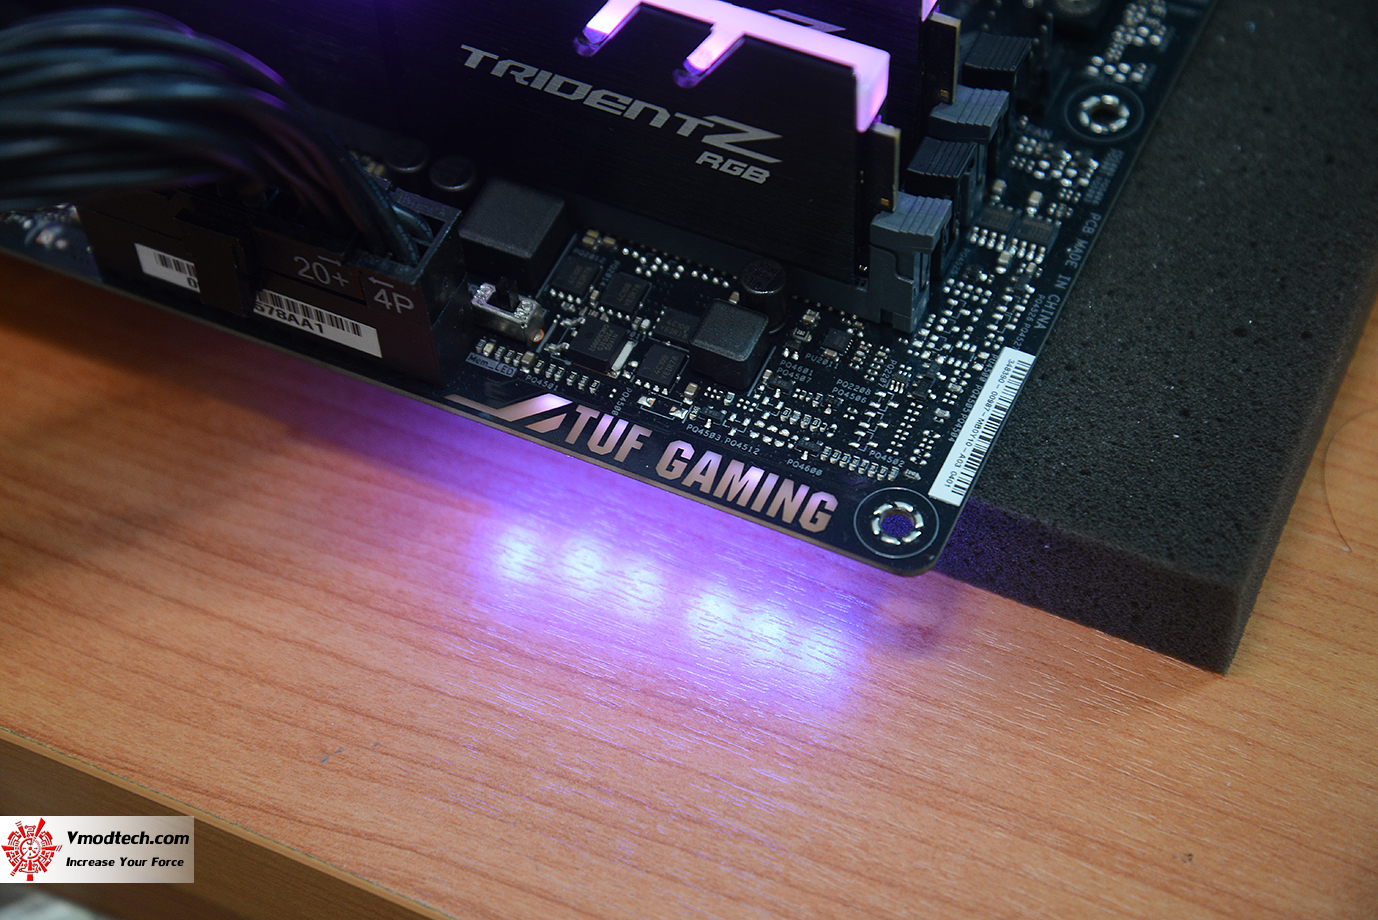 dsc 3304 ASUS TUF Z390M PRO GAMING REVIEW